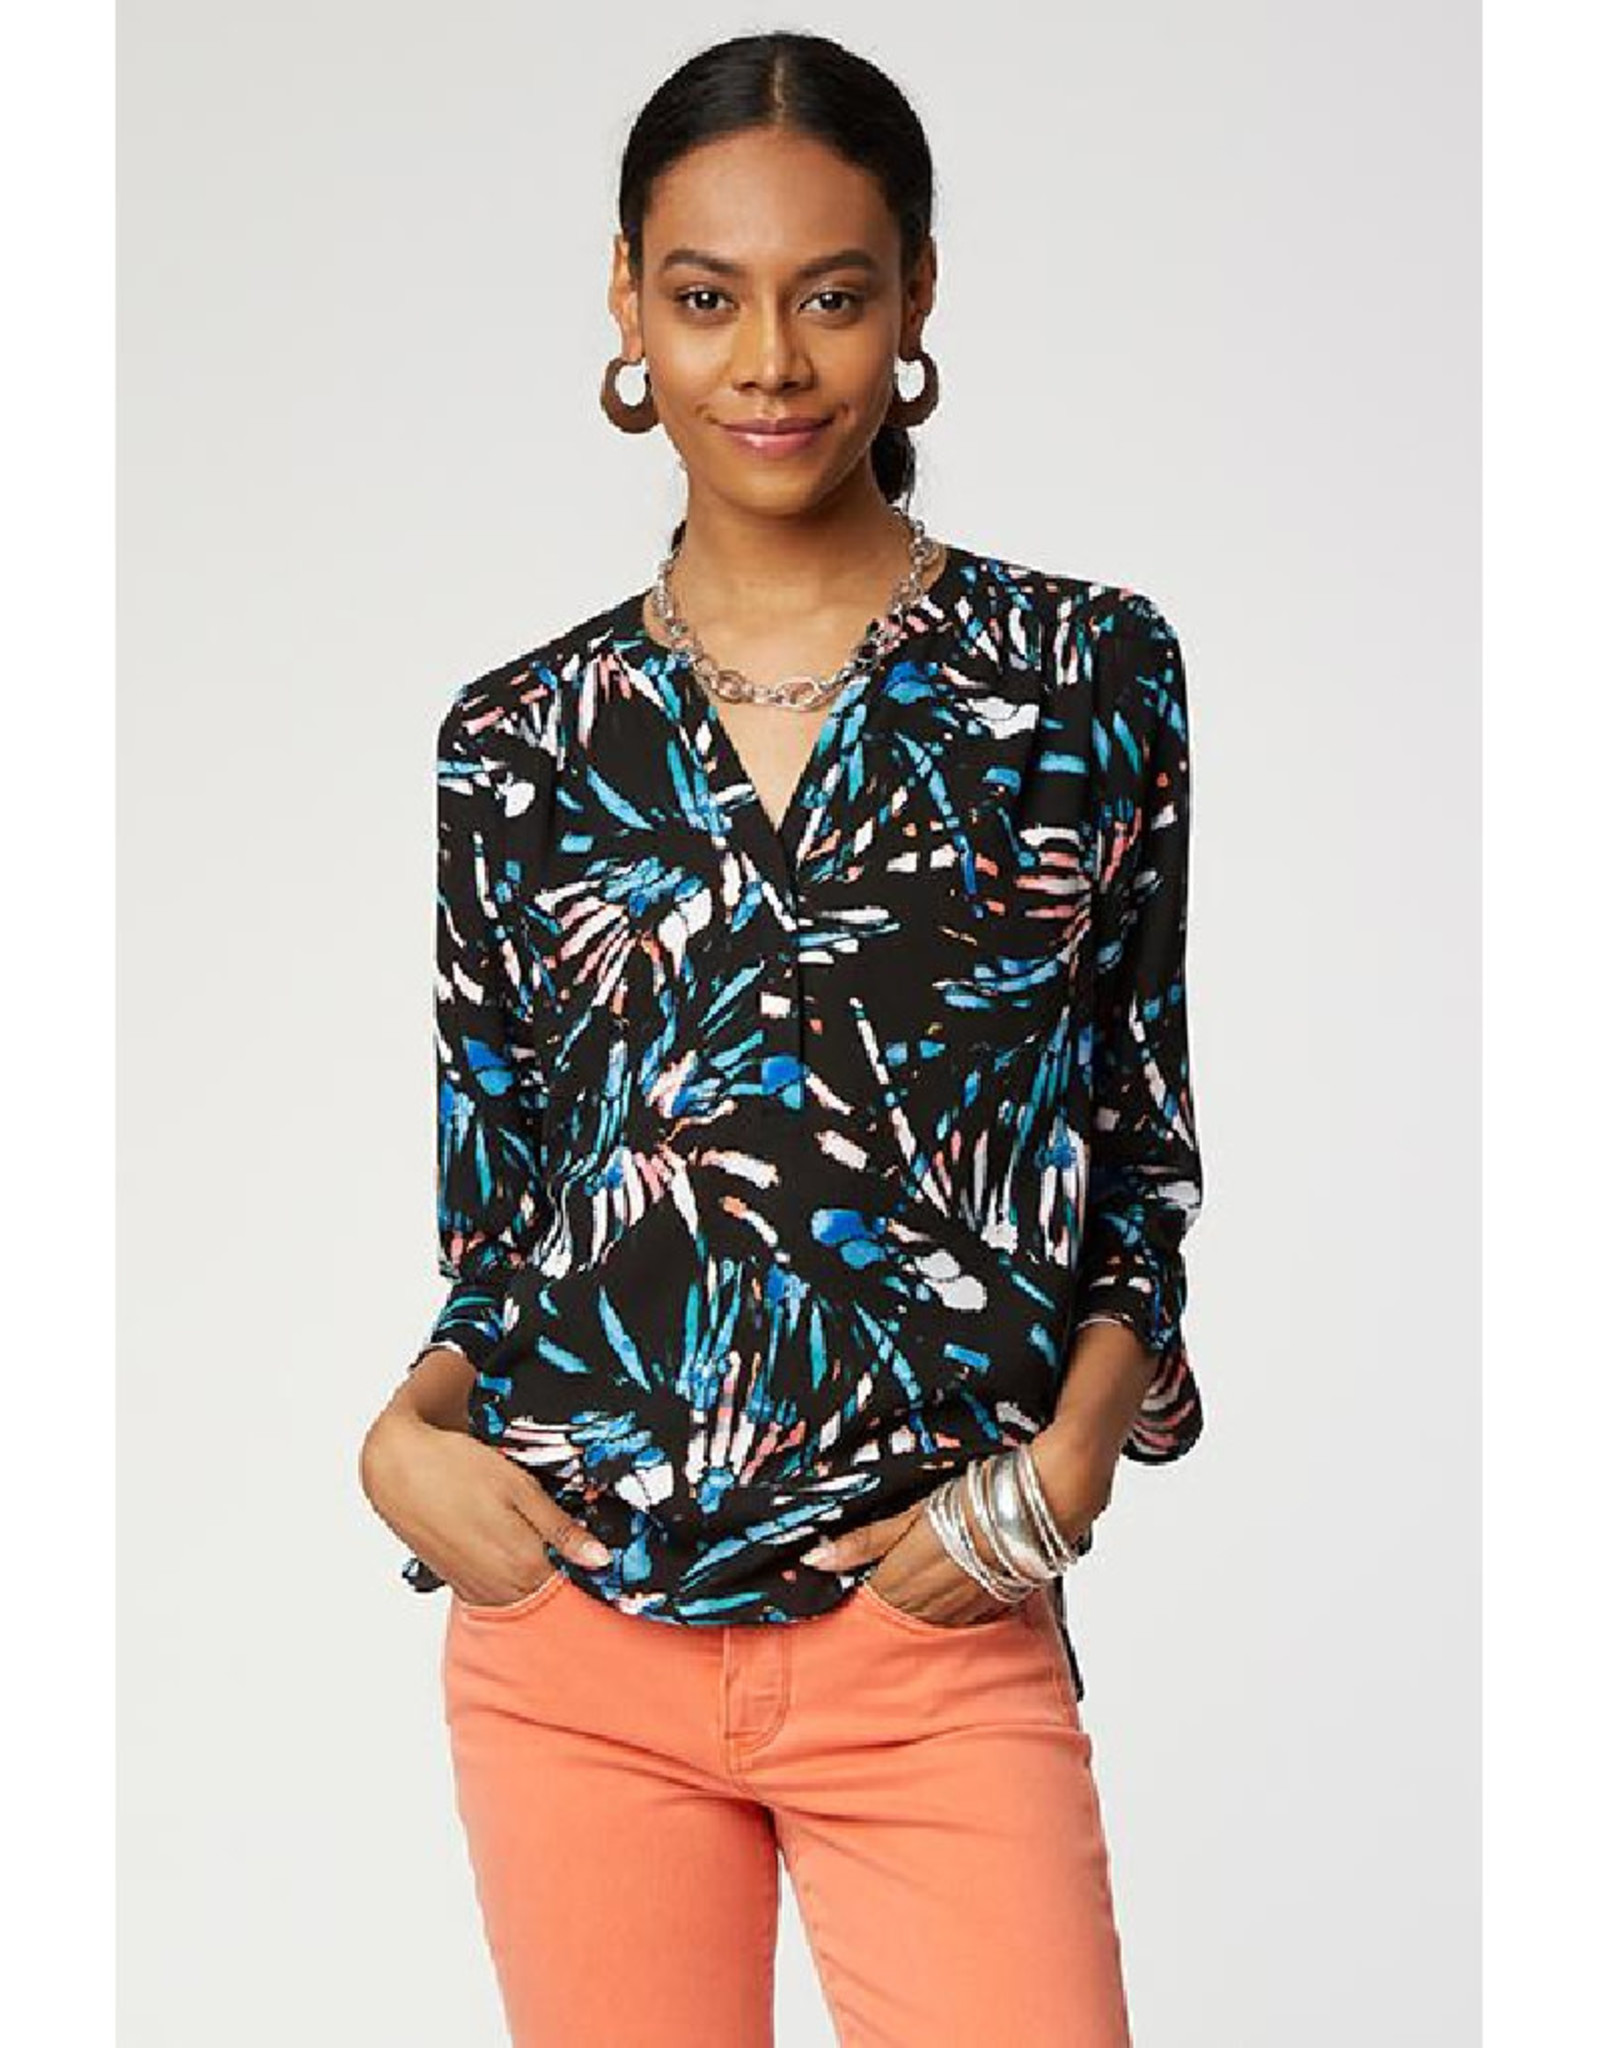 The Perfect Blouse